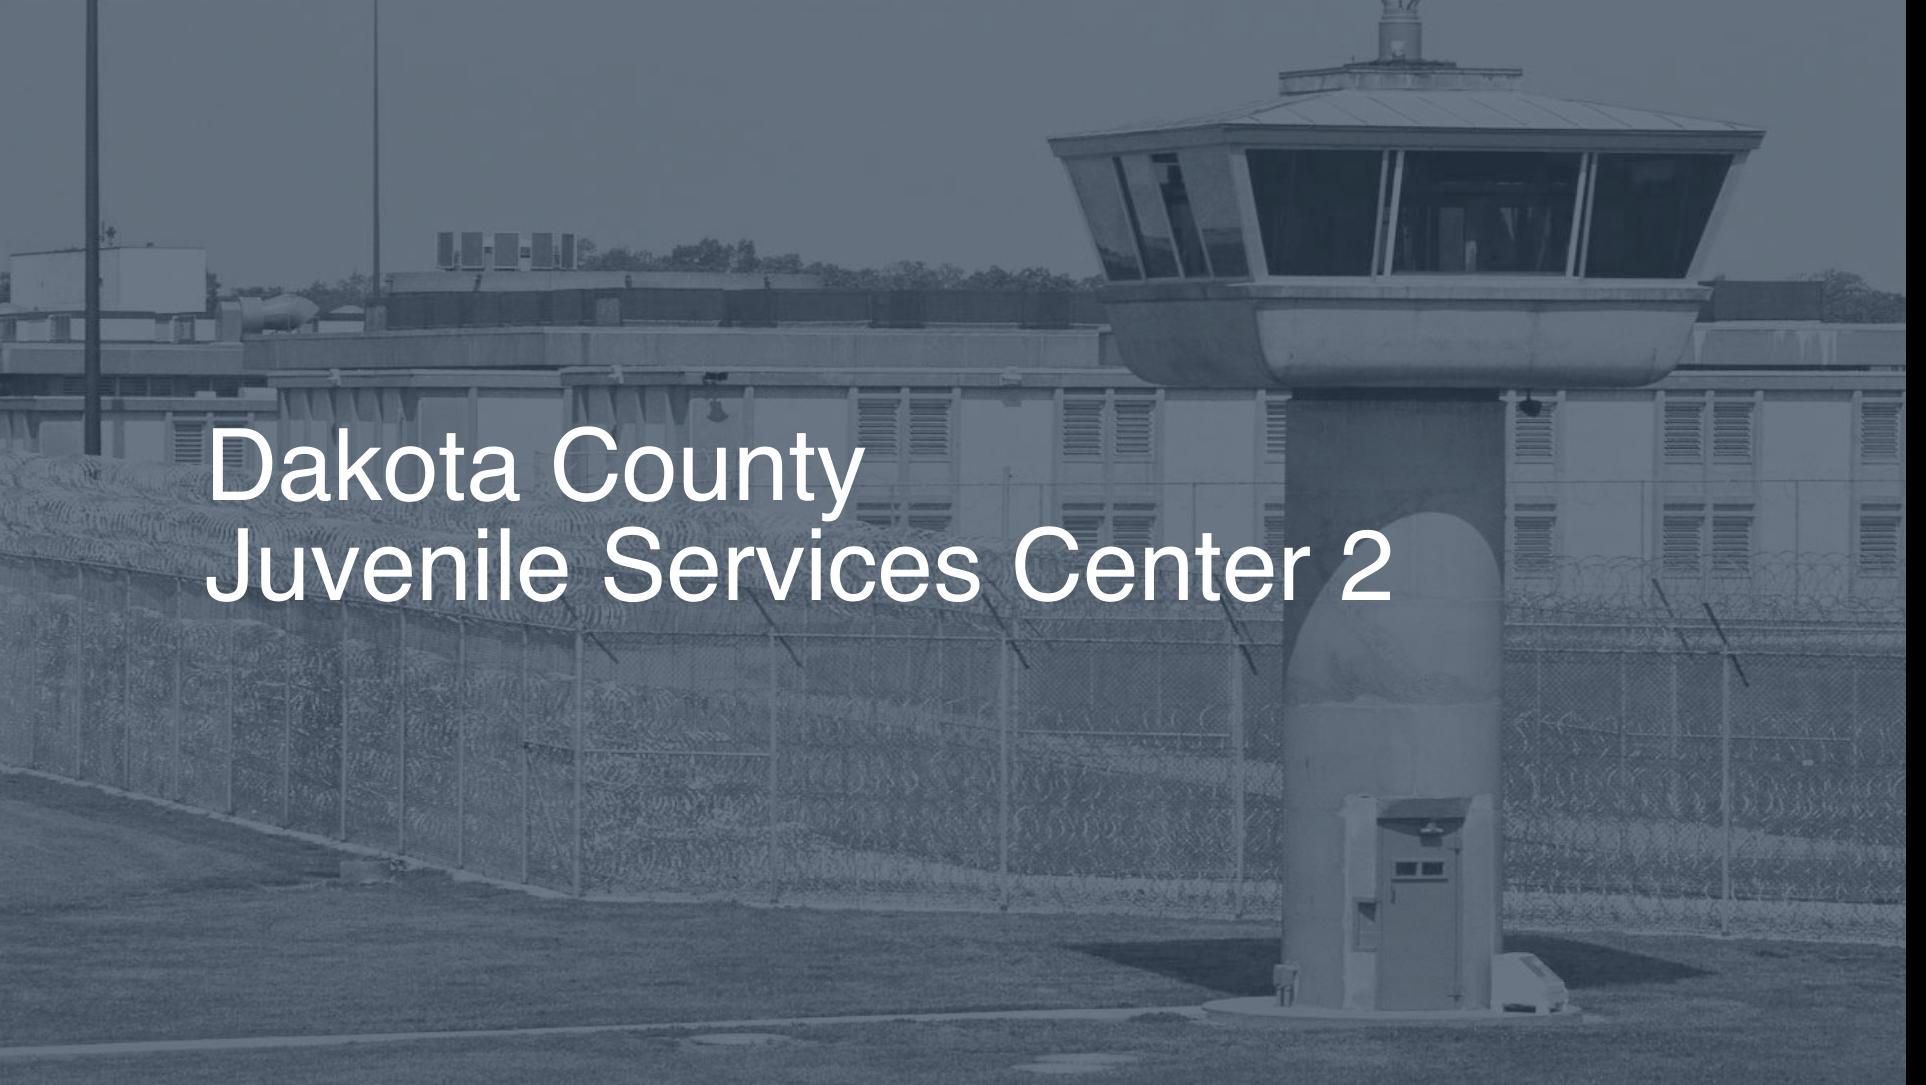 Dakota County Juvenile Services Center correctional facility picture